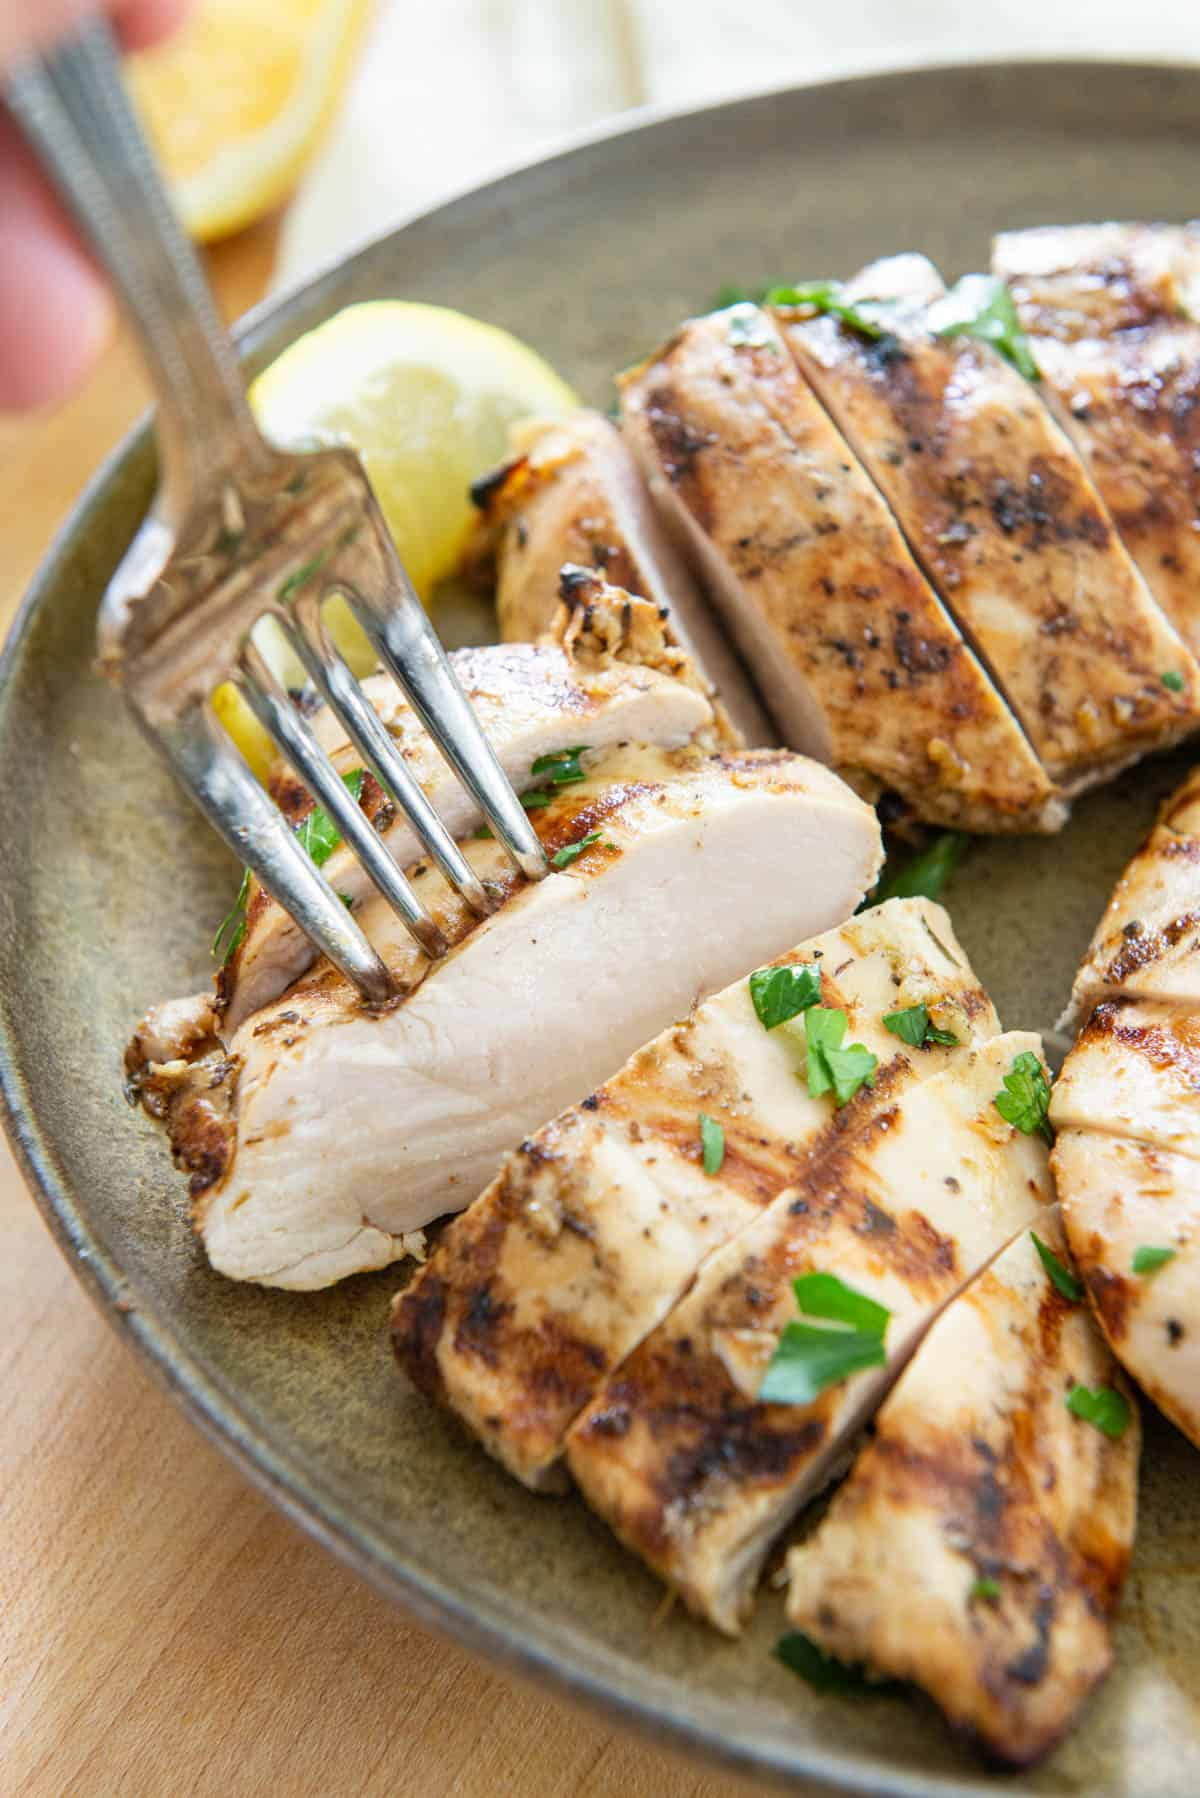 Grilled Chicken Breast Sliced On a Plate with Fork